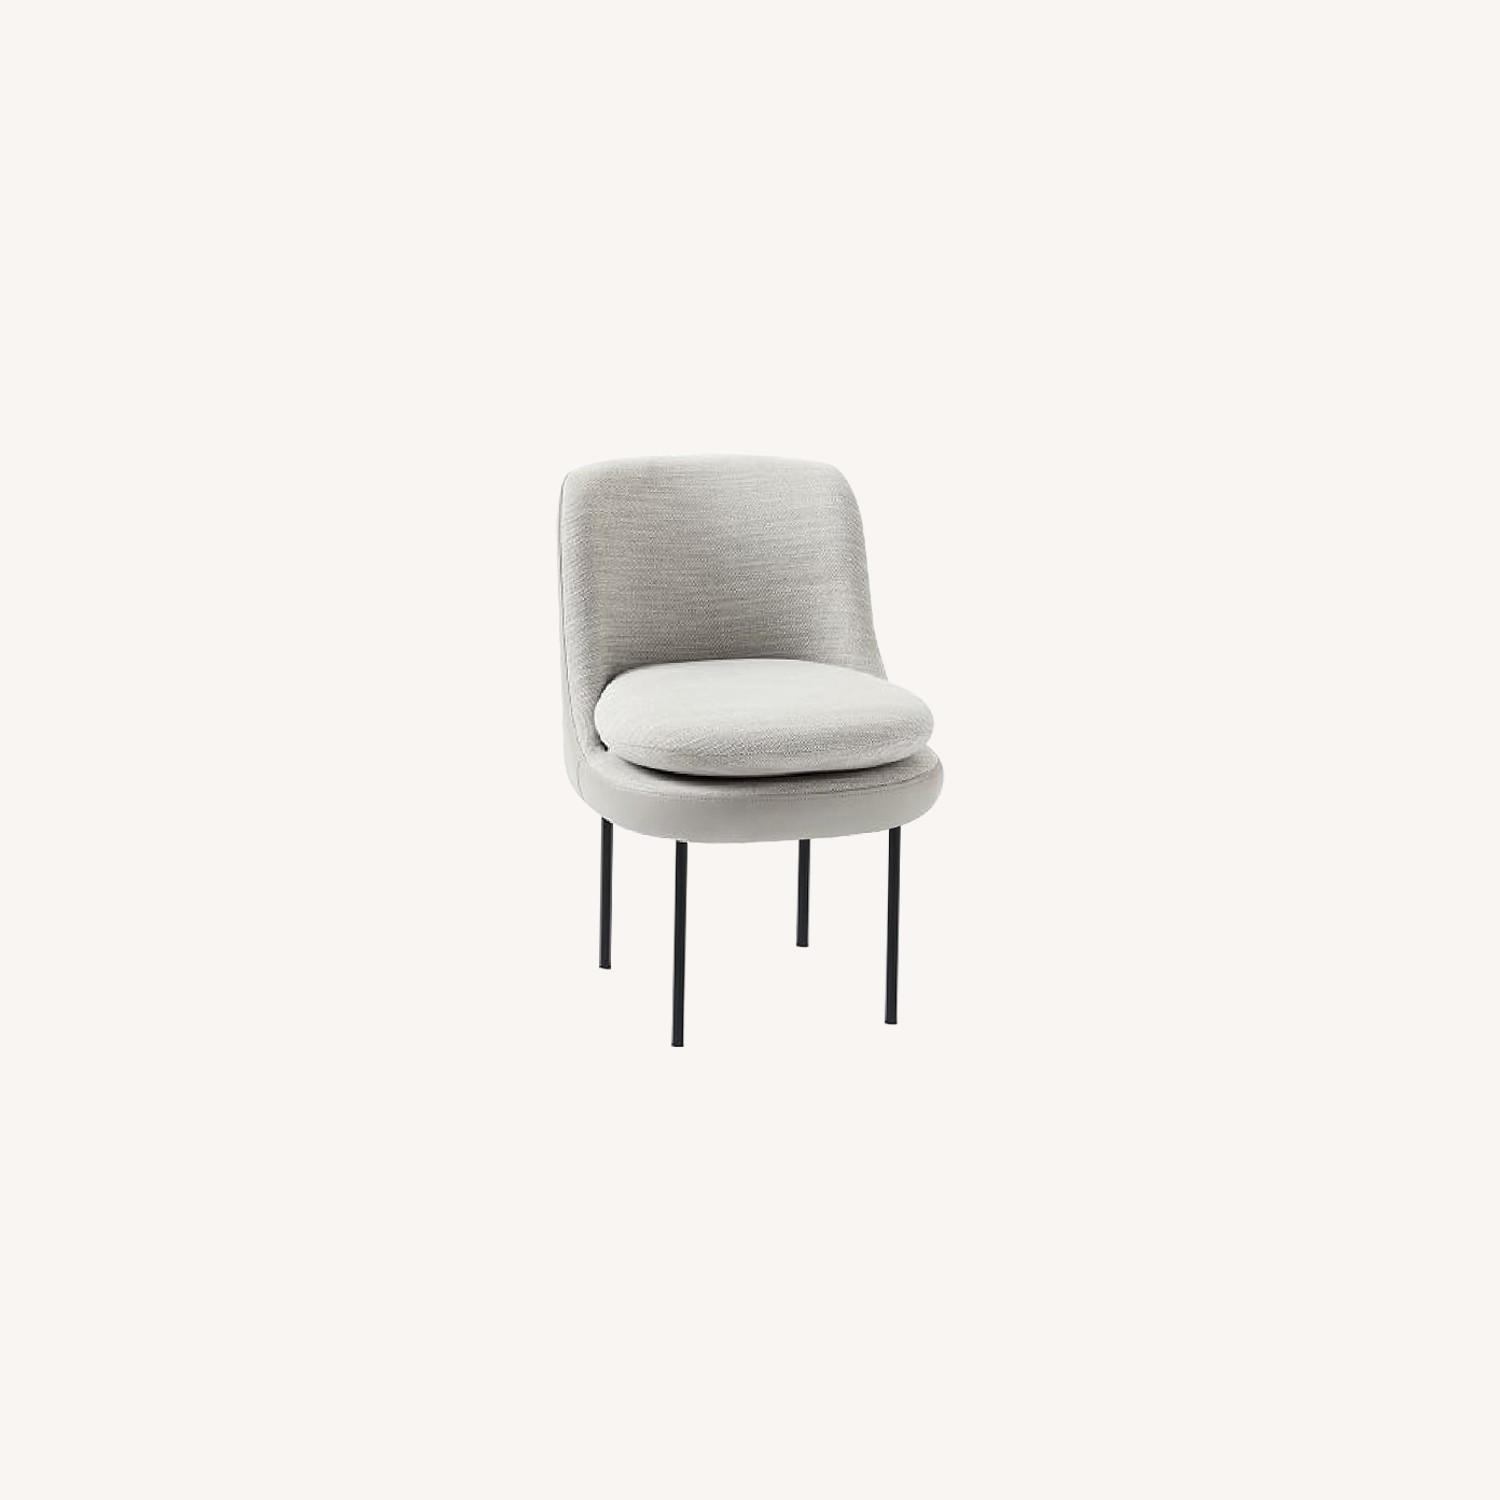 West Elm Modern Curved Chair - image-0